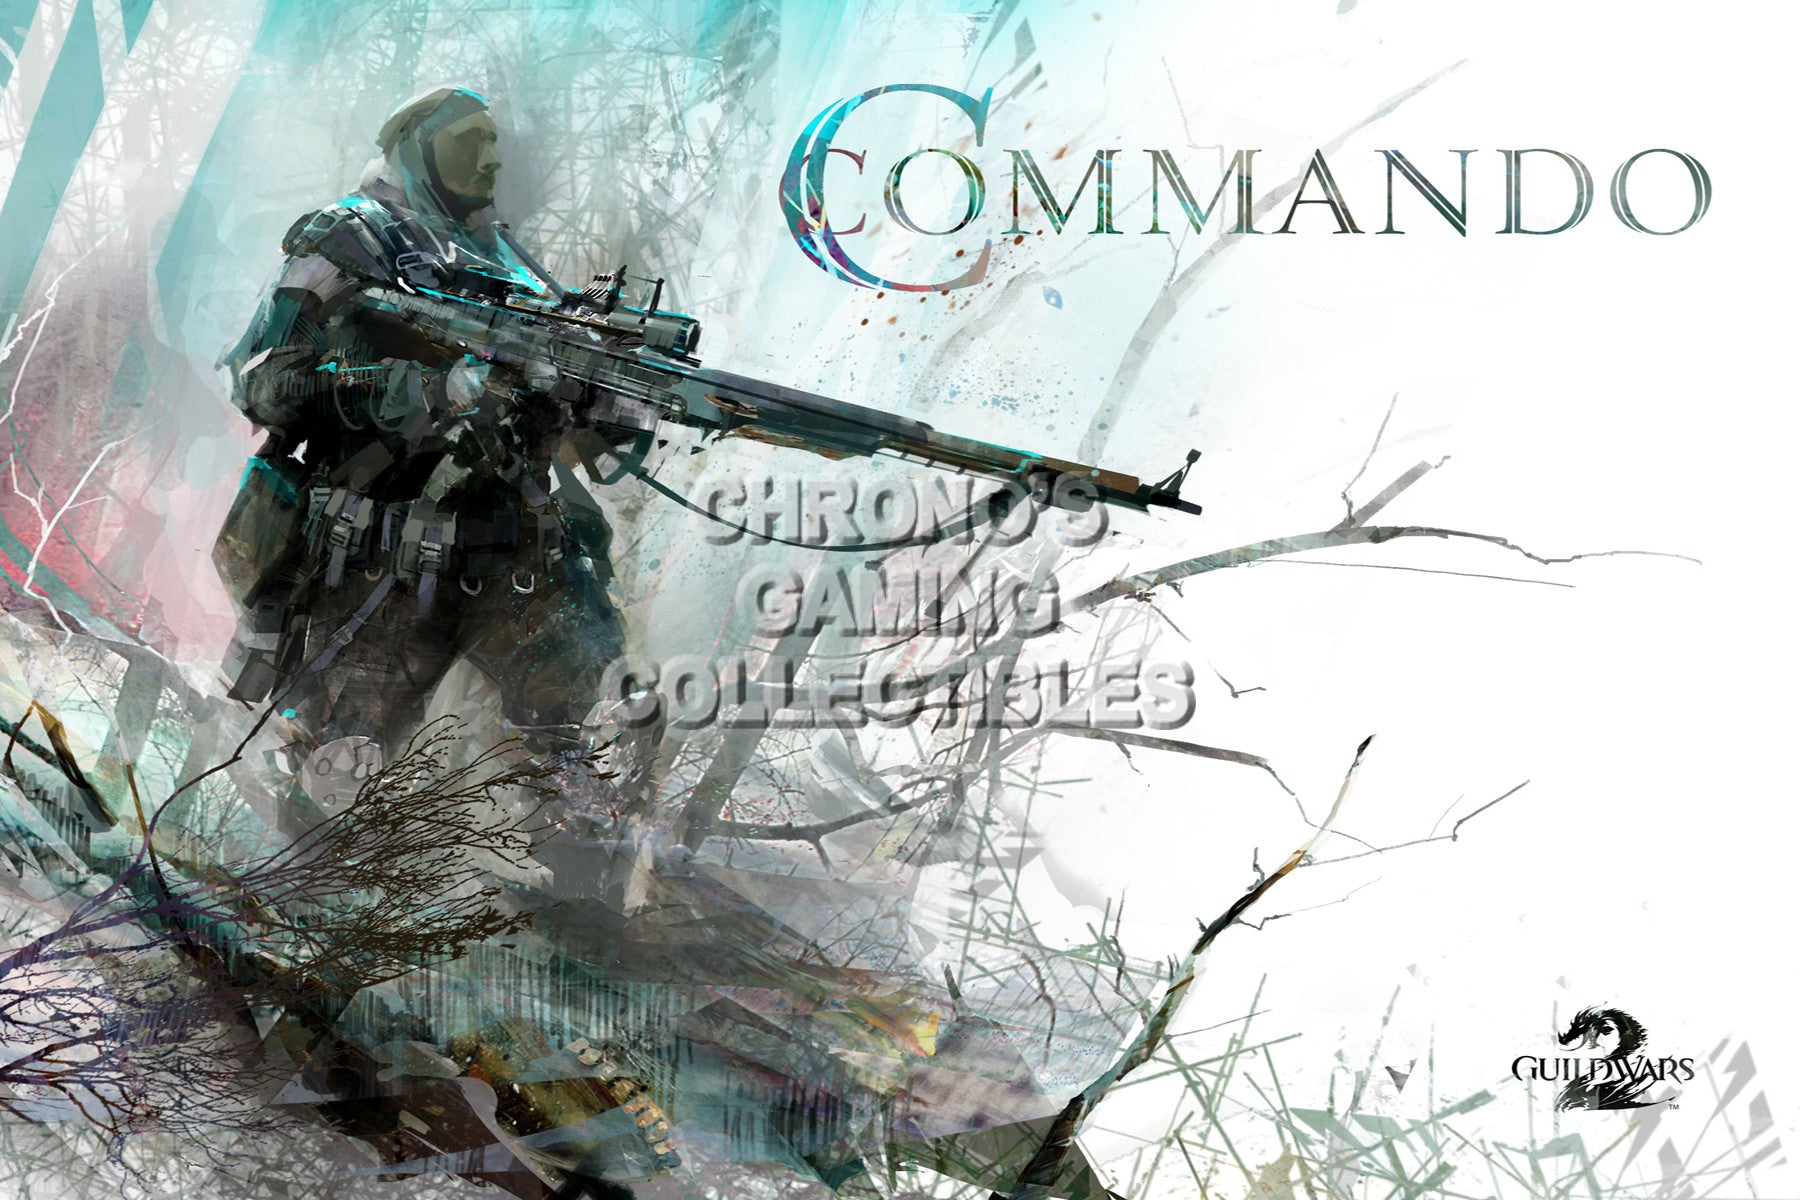 CGC Huge Poster - Guild Wars 2 - Commando - GUI020